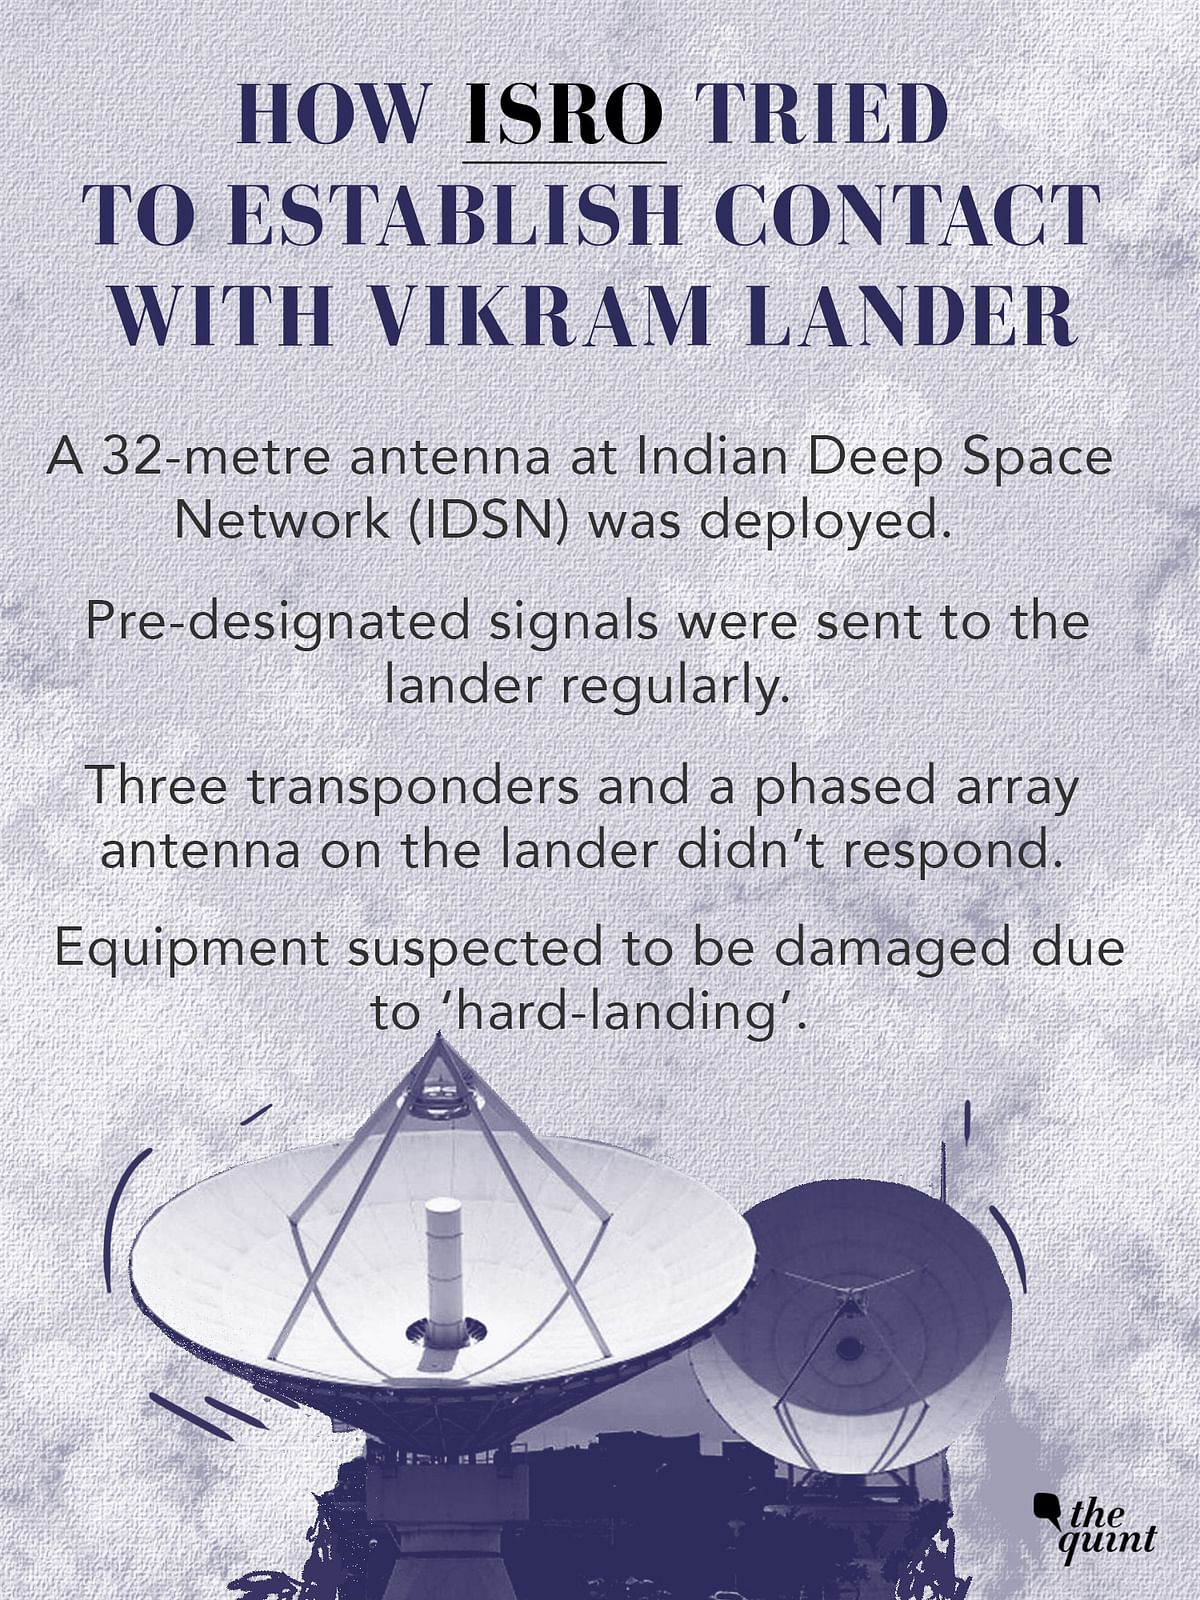 How ISRO Tried to Reconnect With Vikram Lander Before Lunar Night